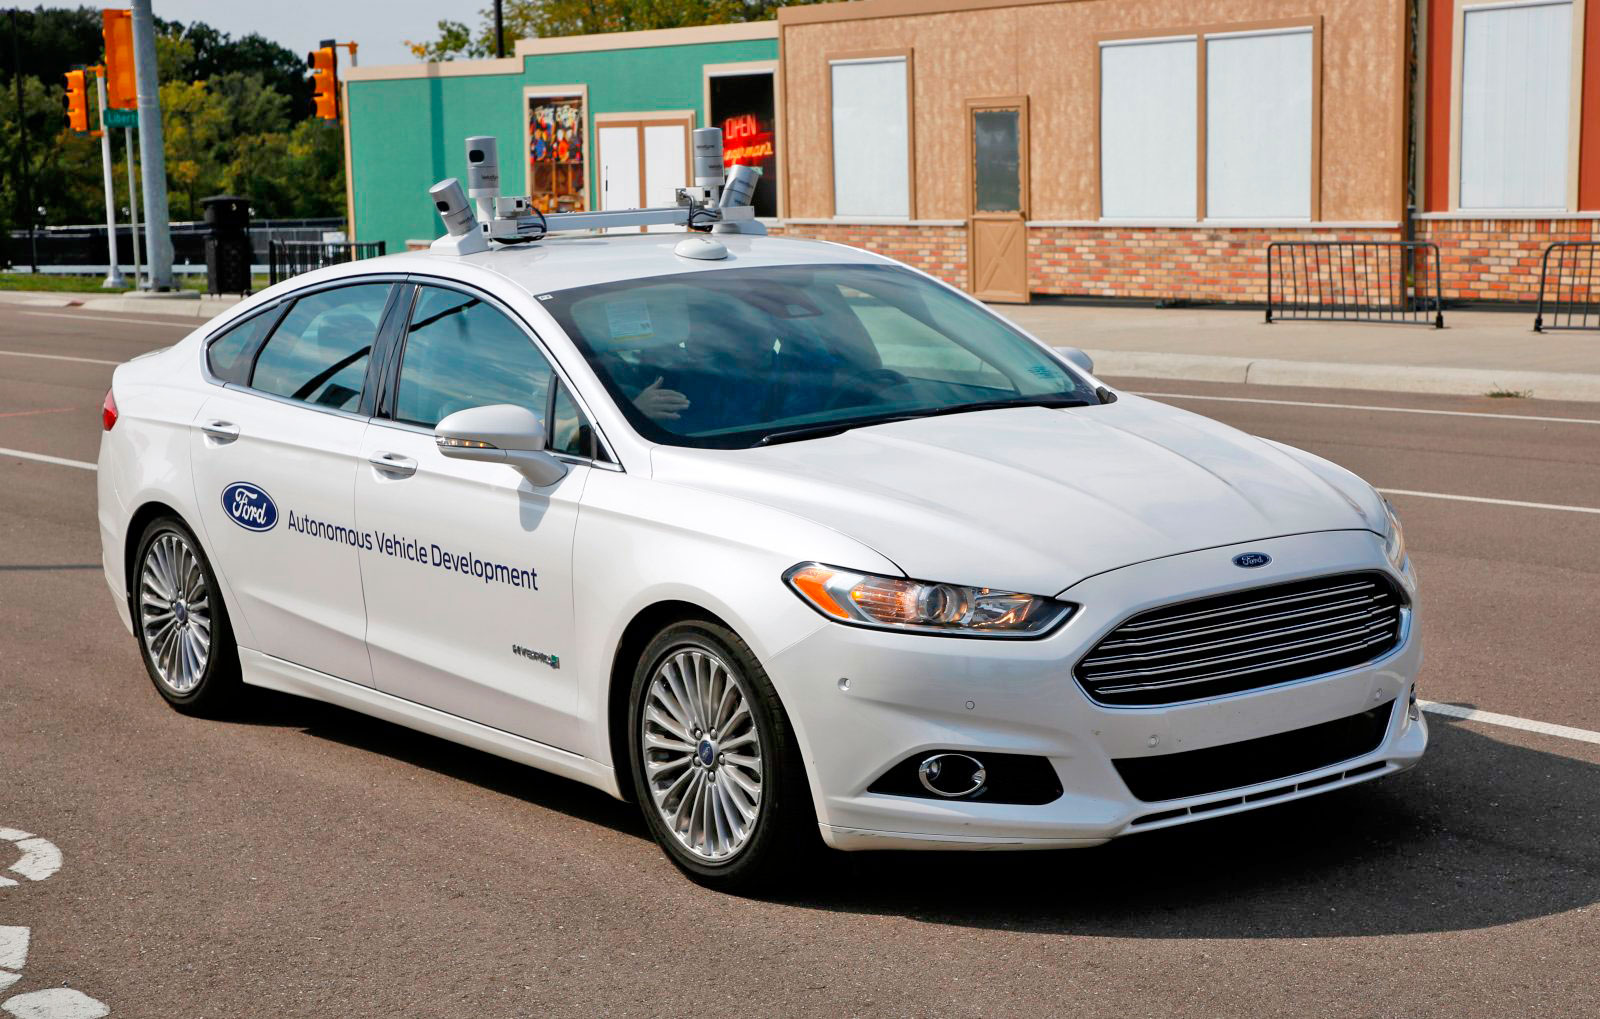 Ford exec: Hybrids are better suited for self-driving cars than EVs